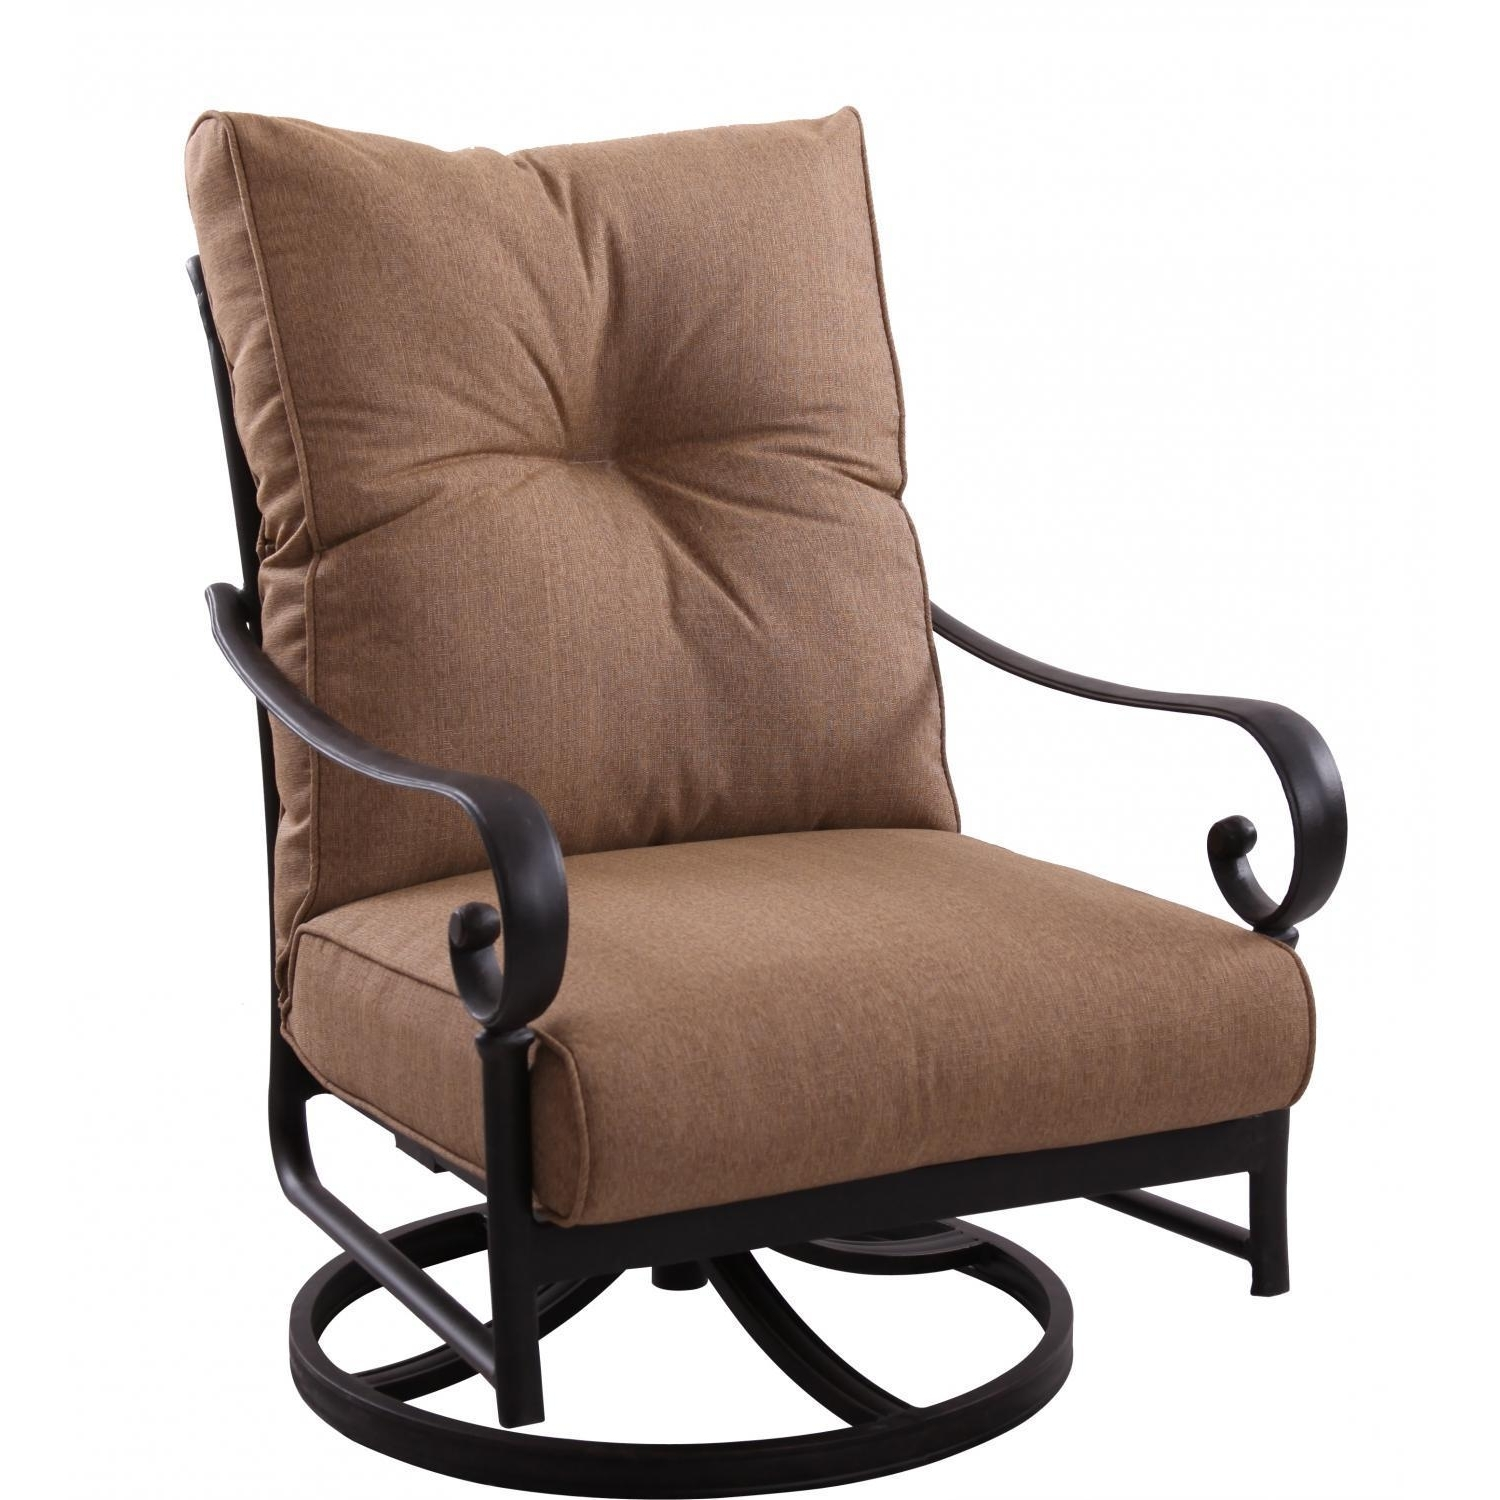 Darlee Santa Anita Cast Aluminum Patio Swivel Rocker Club Chair Intended For Newest Rocking Chairs For Patio (View 5 of 20)